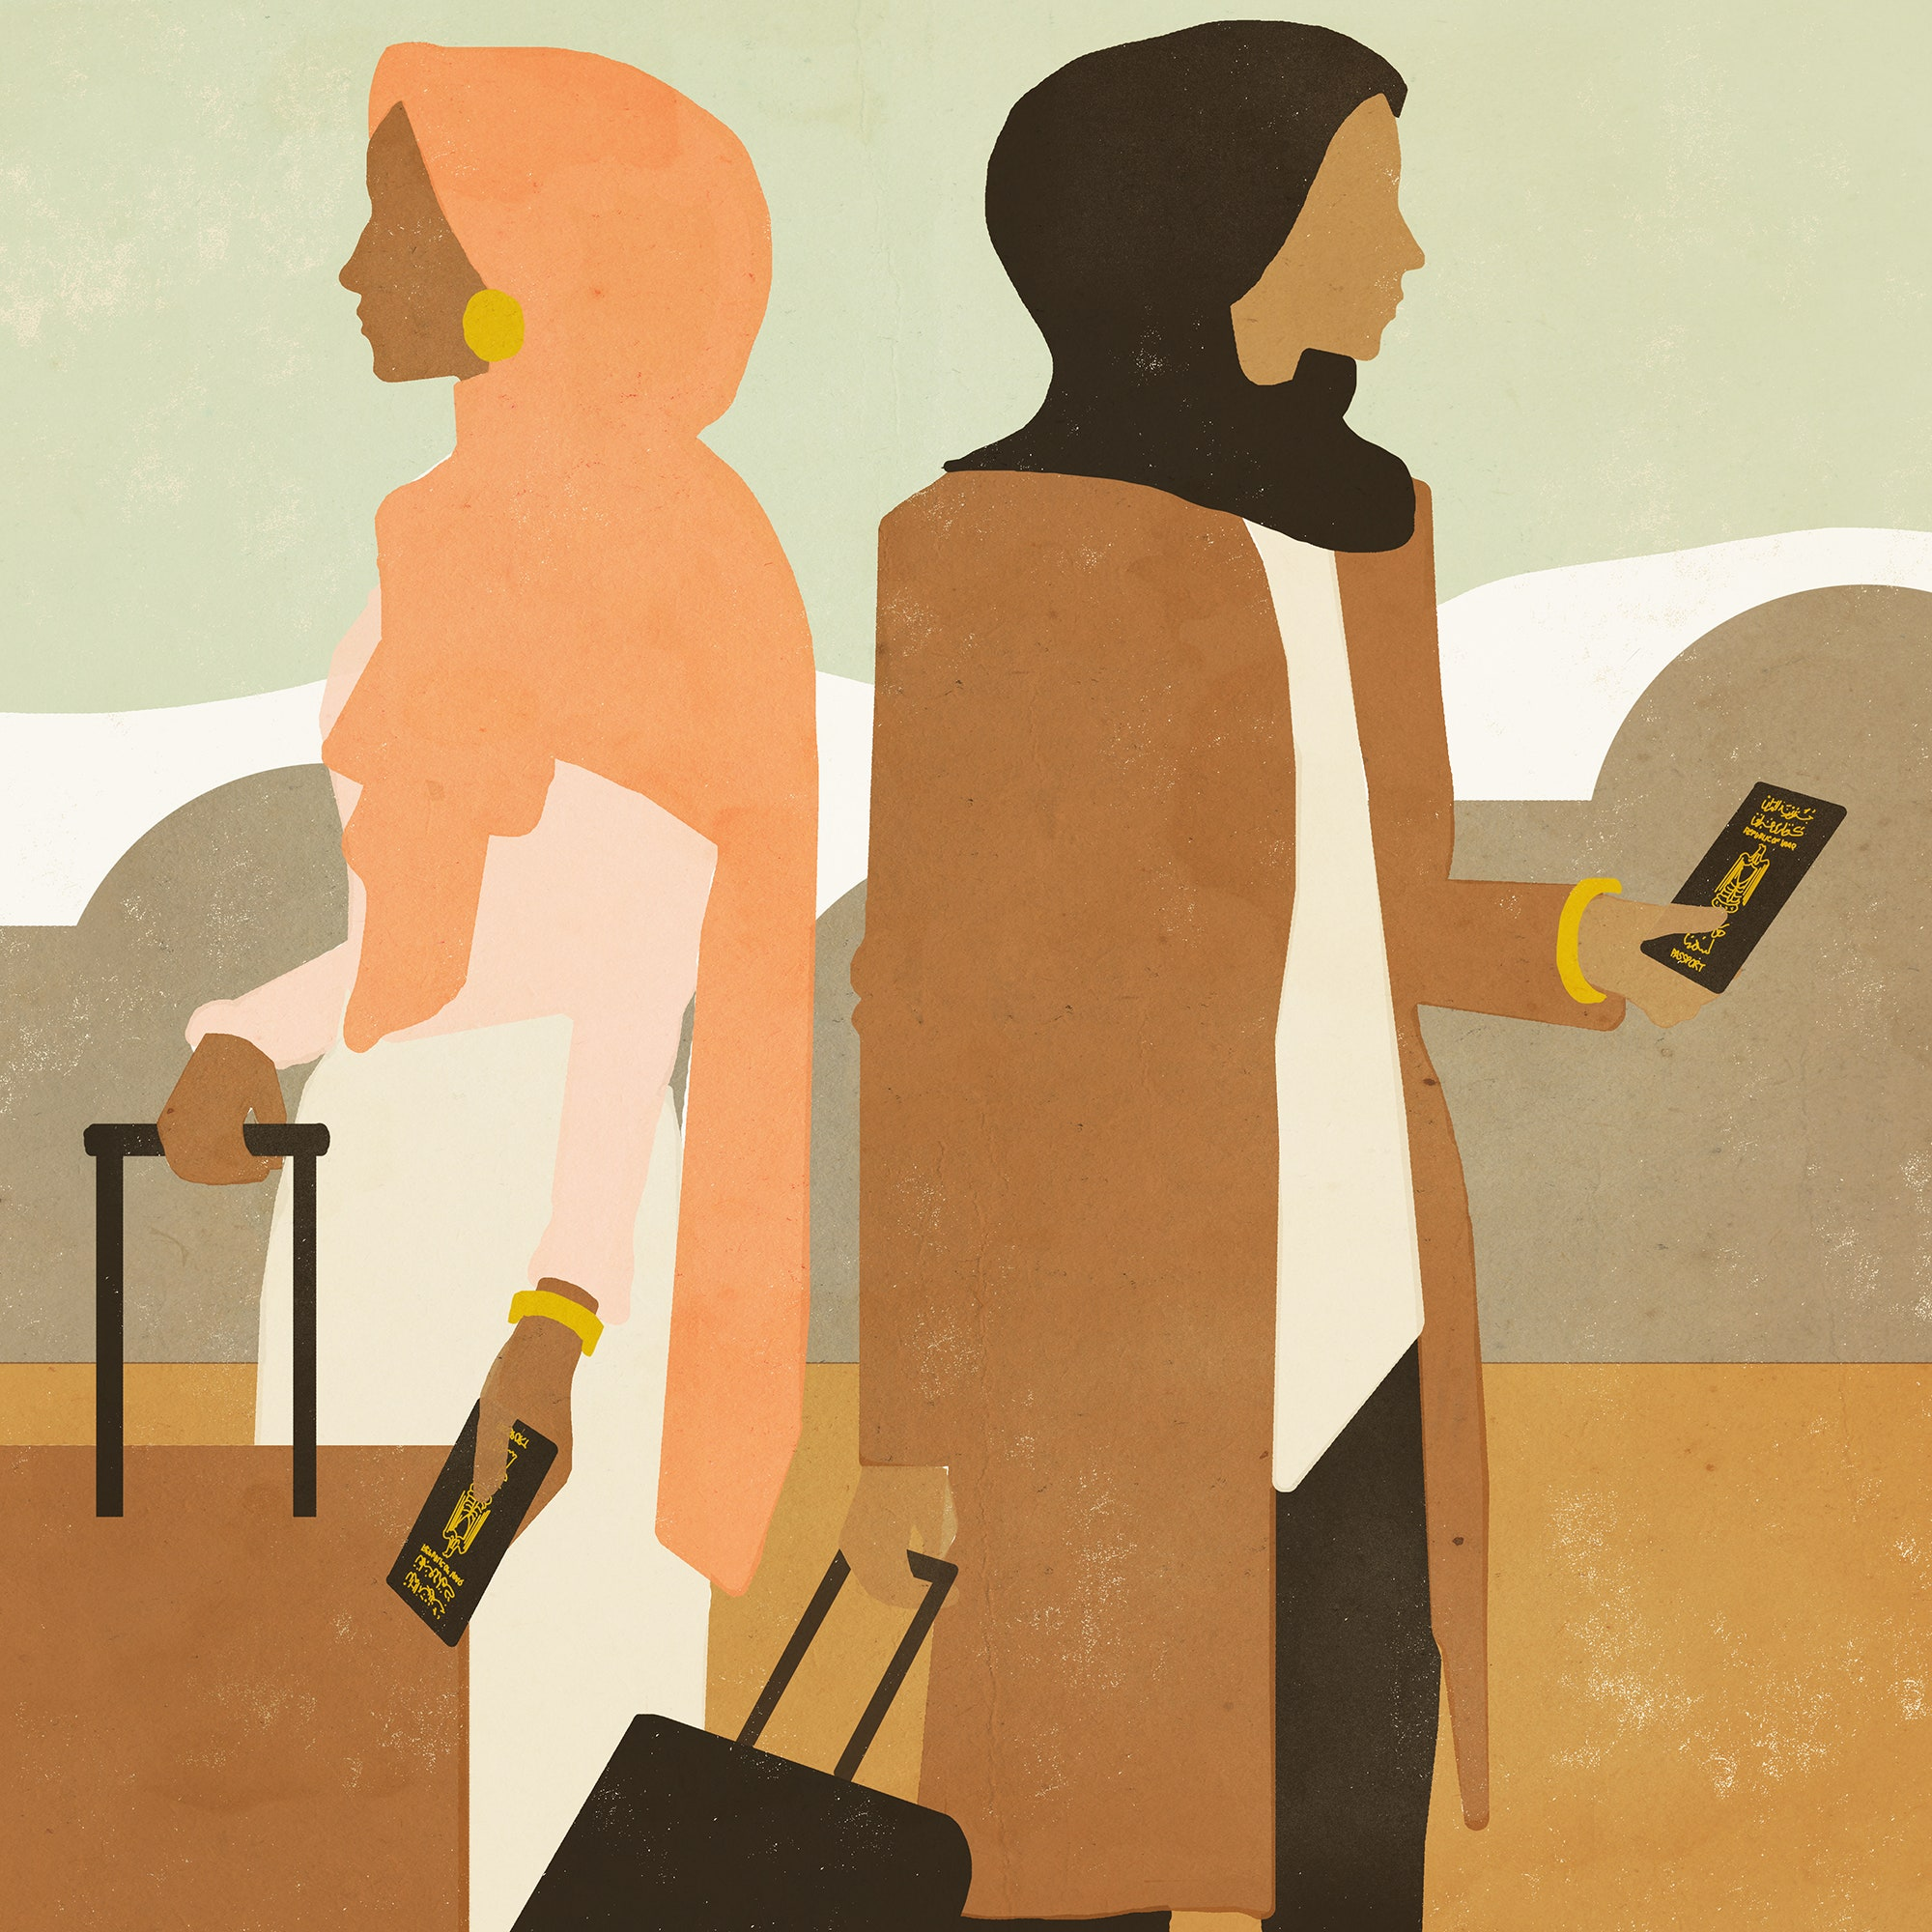 Hijabs and Hostels: Female Muslim Travel Bloggers Defy Bans and Stereotypes